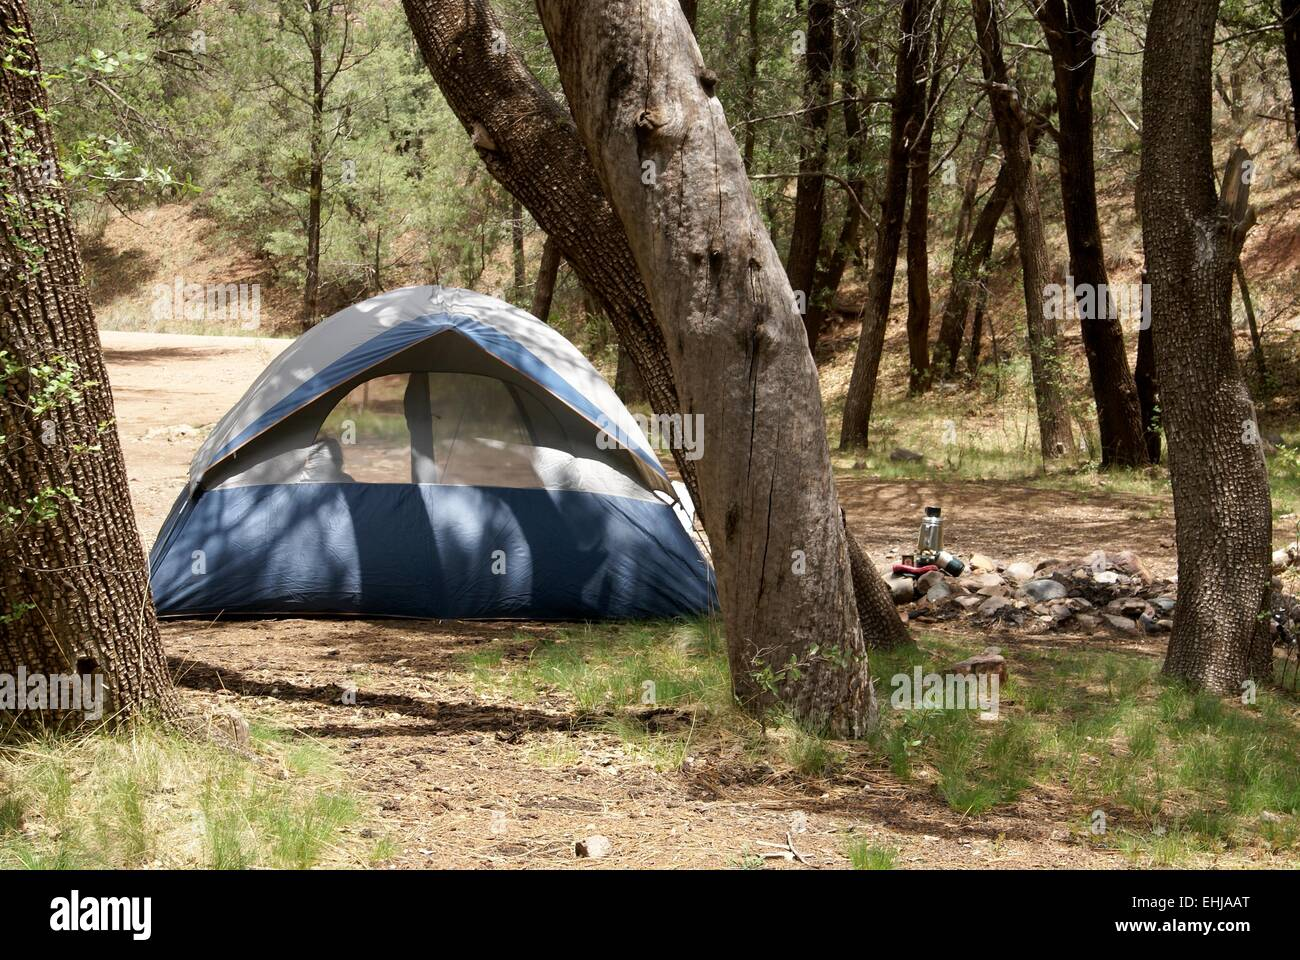 Tent in the forest at a primitive campground - Stock Image